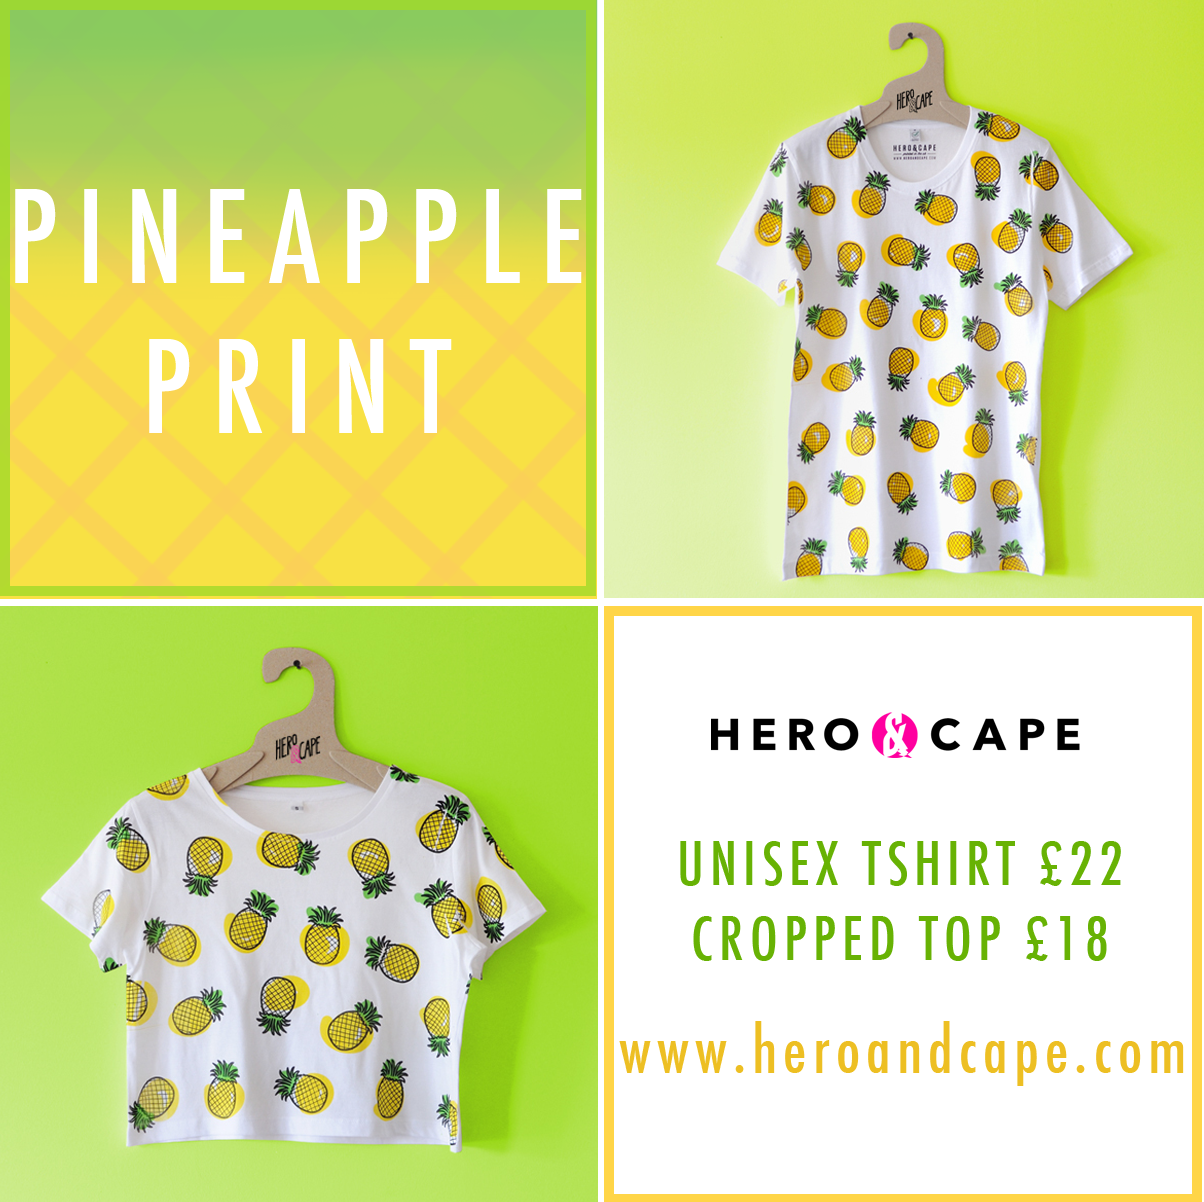 pineapple tshirt, pineapple print tshirt, pineapple pattern top